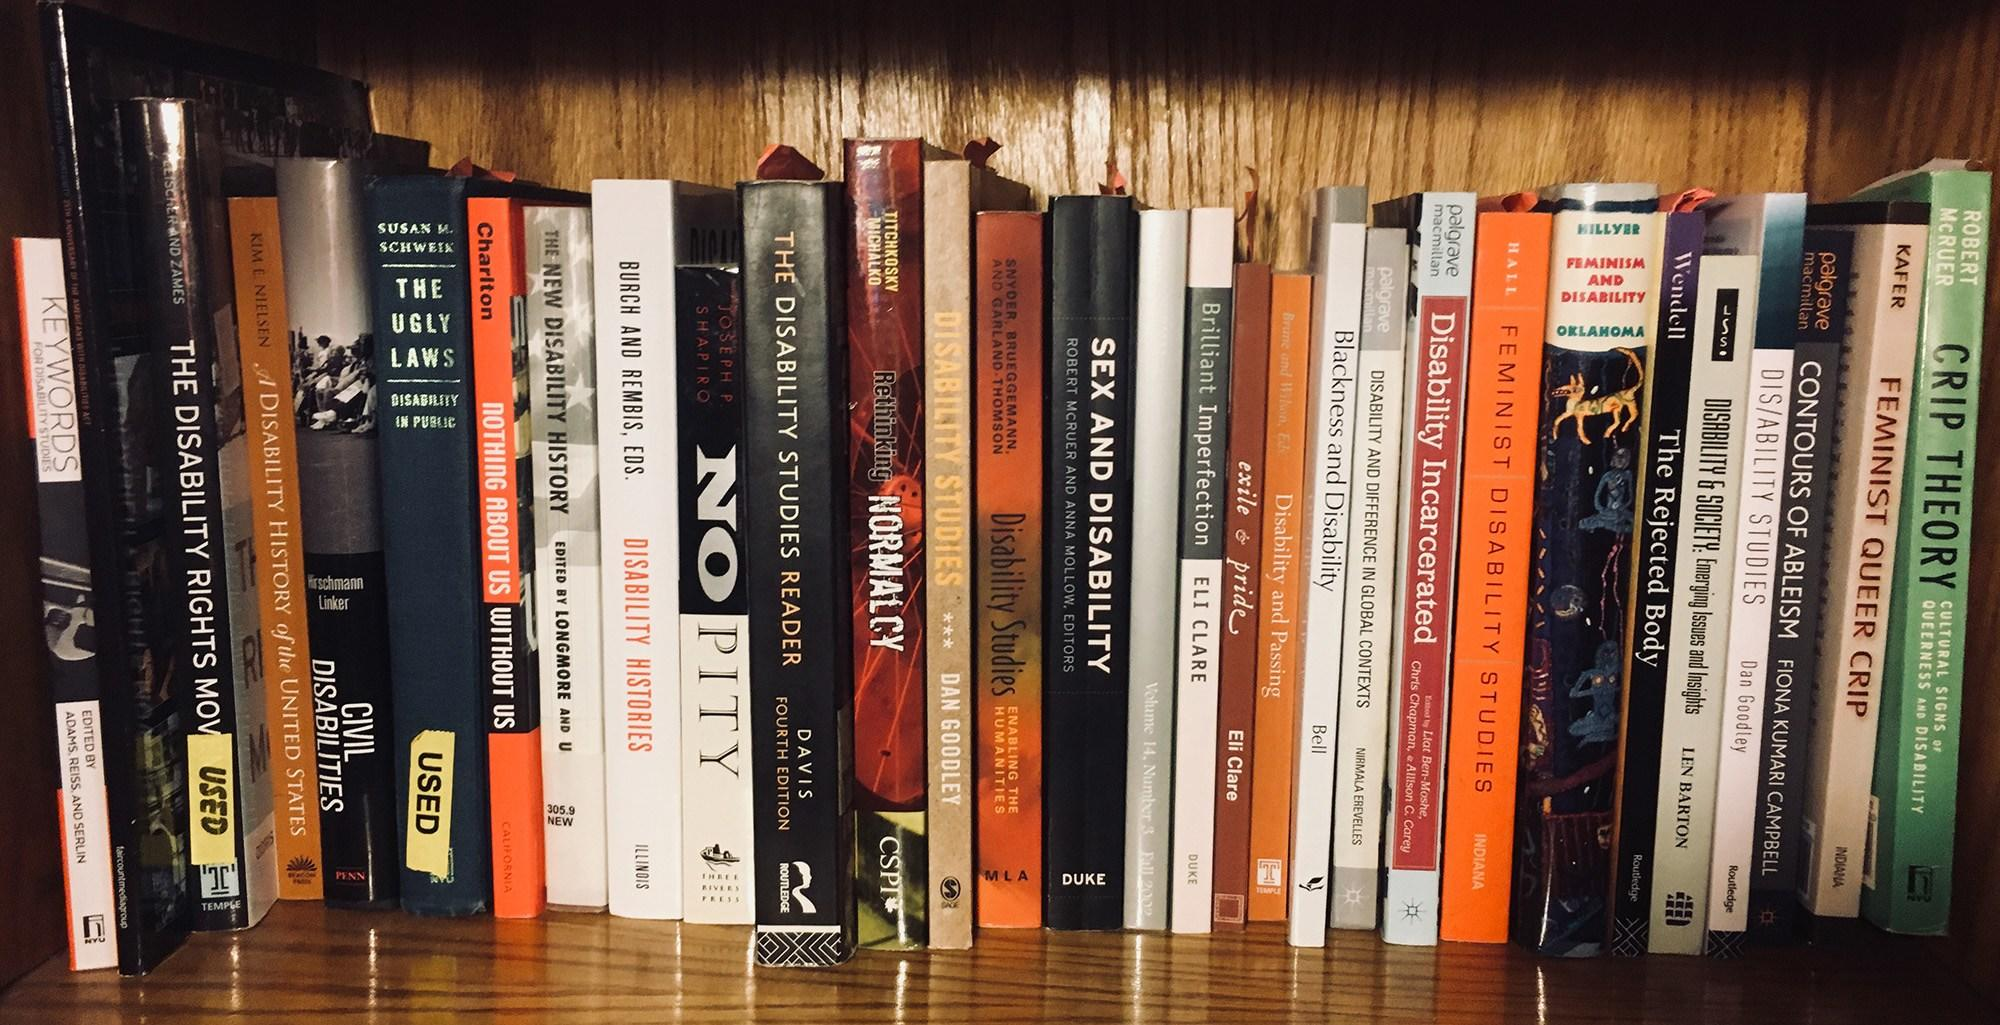 Bookshelf with books on critical disability studies